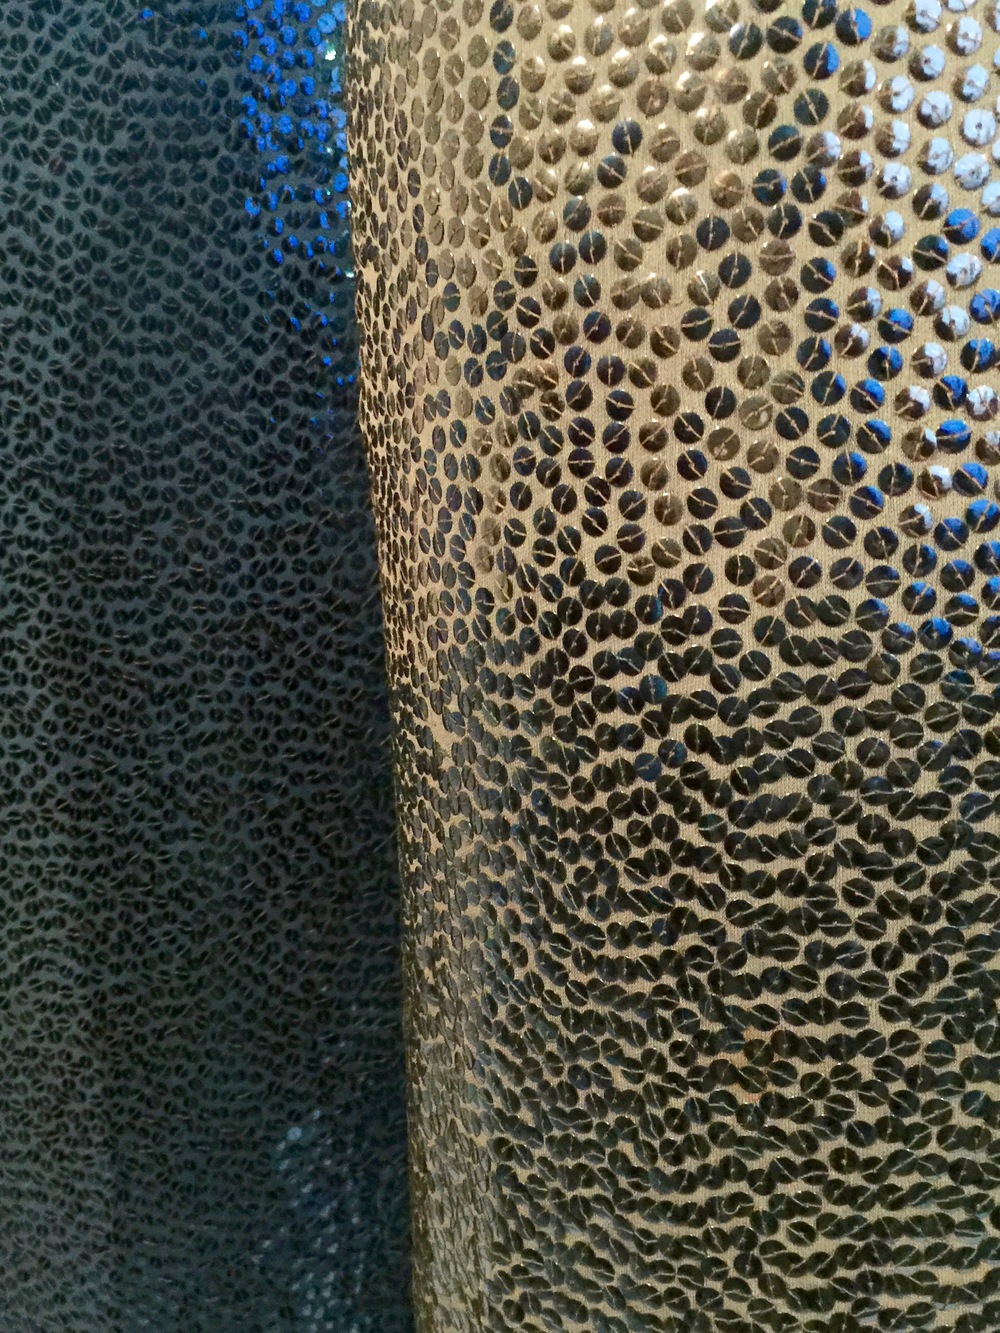 Detail of the hand-embroidered ombré gelatin sequins